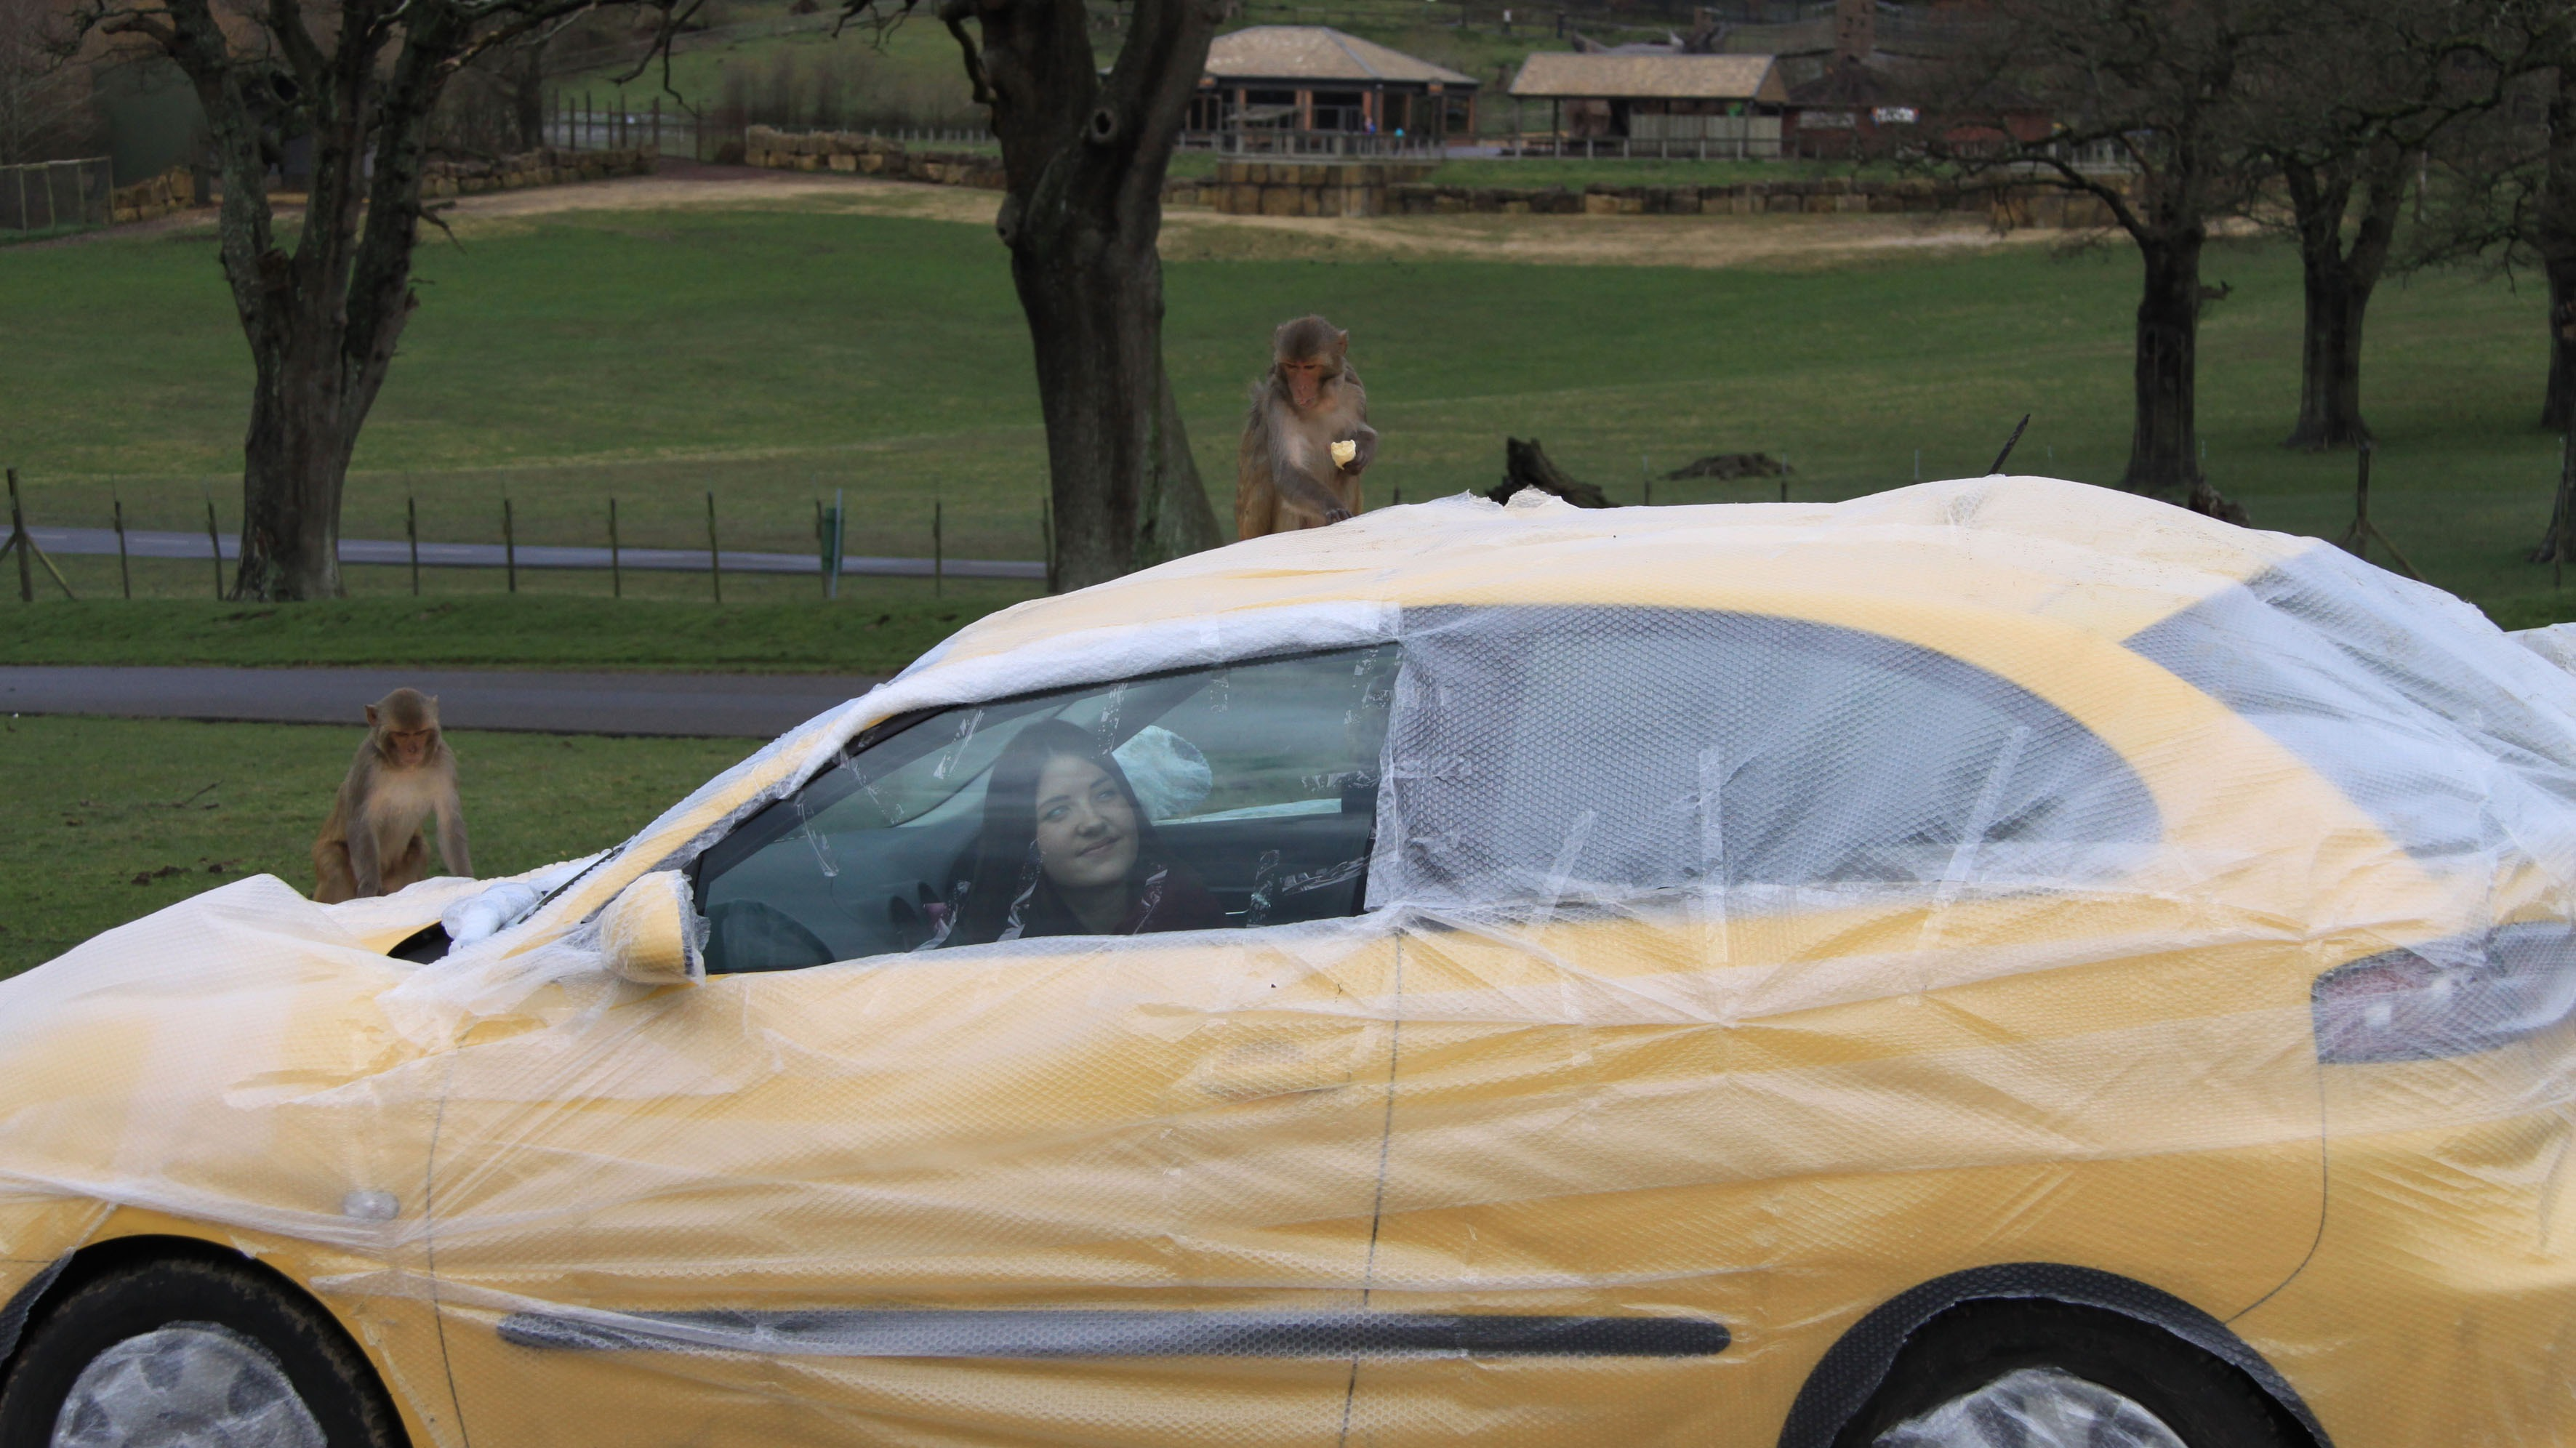 longleat offers bubble wrapped cars west country itv news. Black Bedroom Furniture Sets. Home Design Ideas